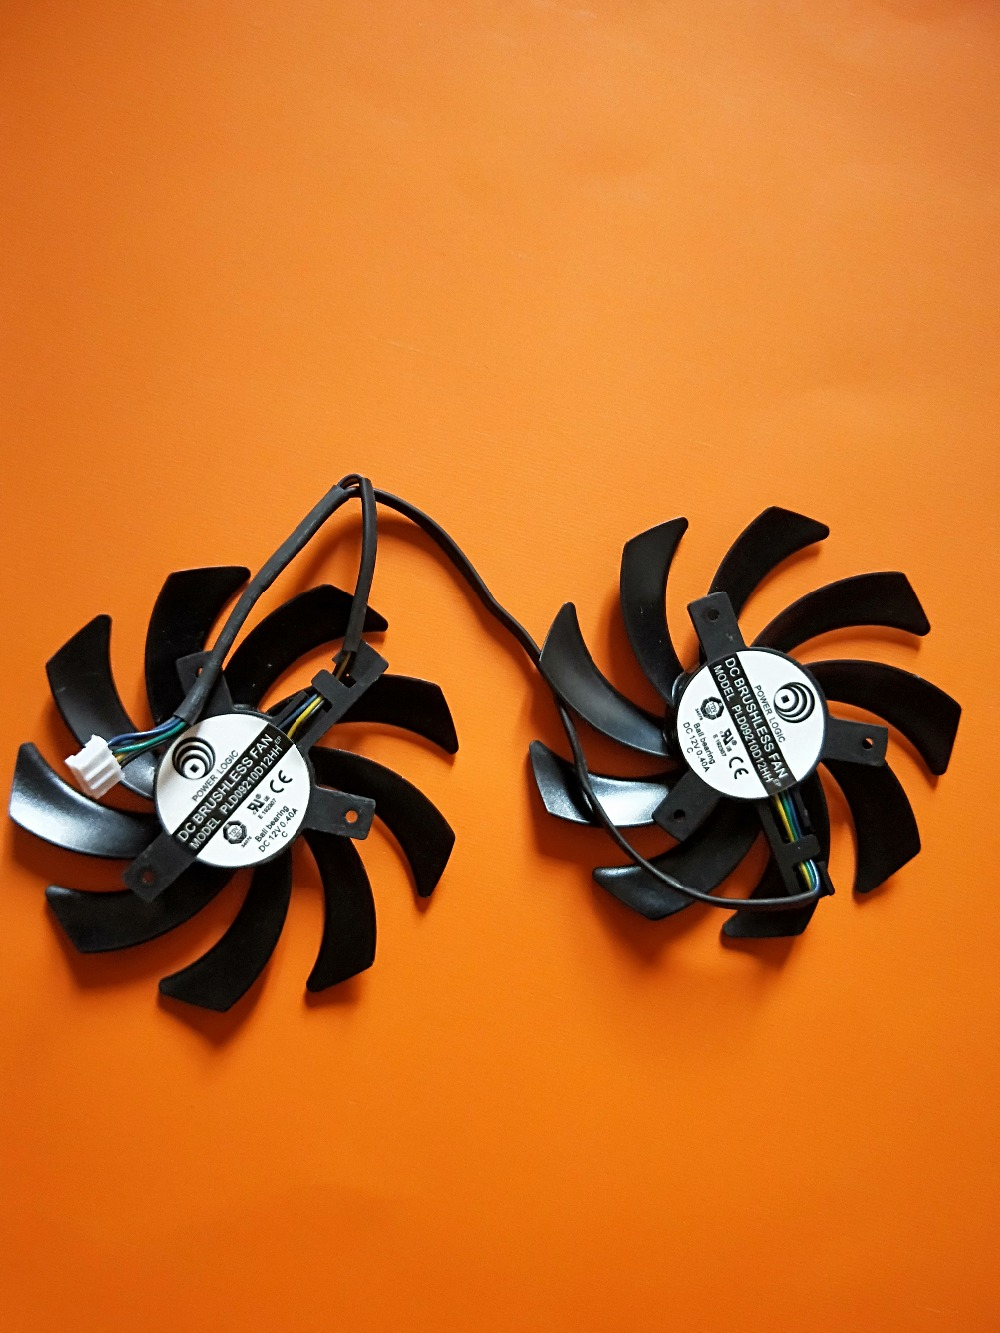 4-Pin 85mm Dual-X <font><b>Fan</b></font> For Video Card <font><b>Fan</b></font> <font><b>R9</b></font> 280X 280 <font><b>270X</b></font> PLD09210D12HH 12V image